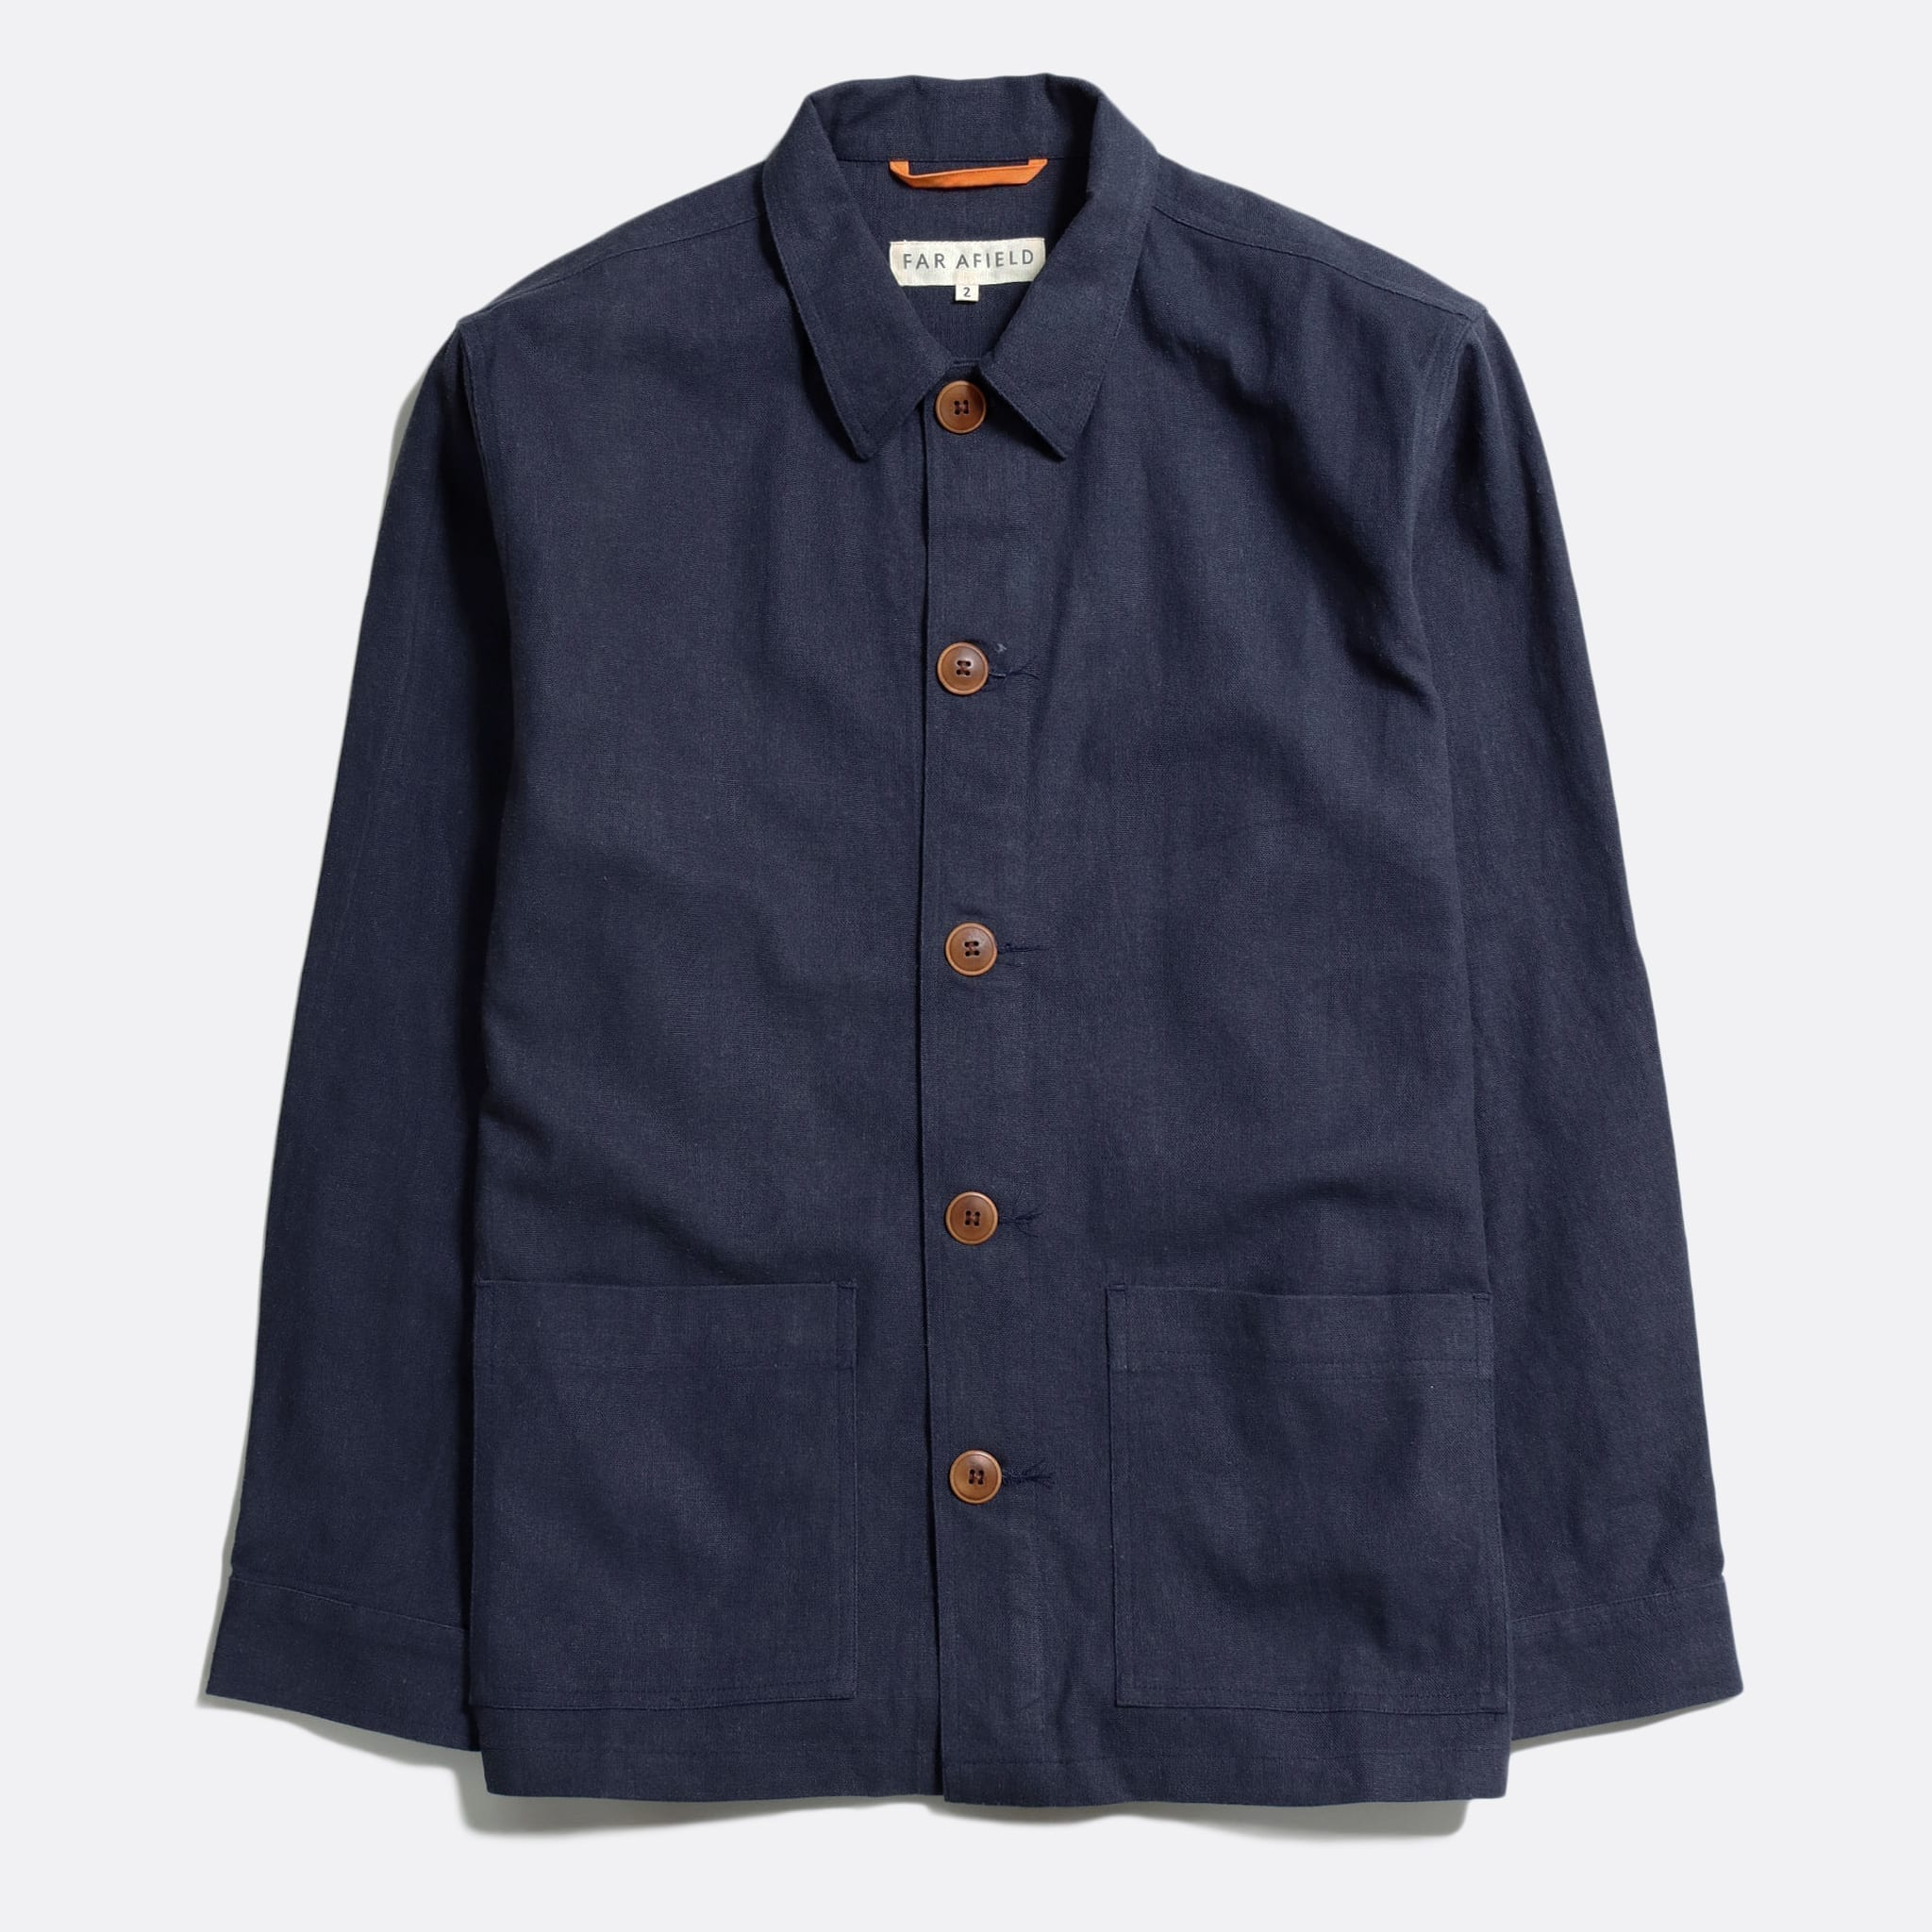 Far Afield Bisset Jacket a Ensign Blue Linen Fabric Lightweight Buttoned Classic Work